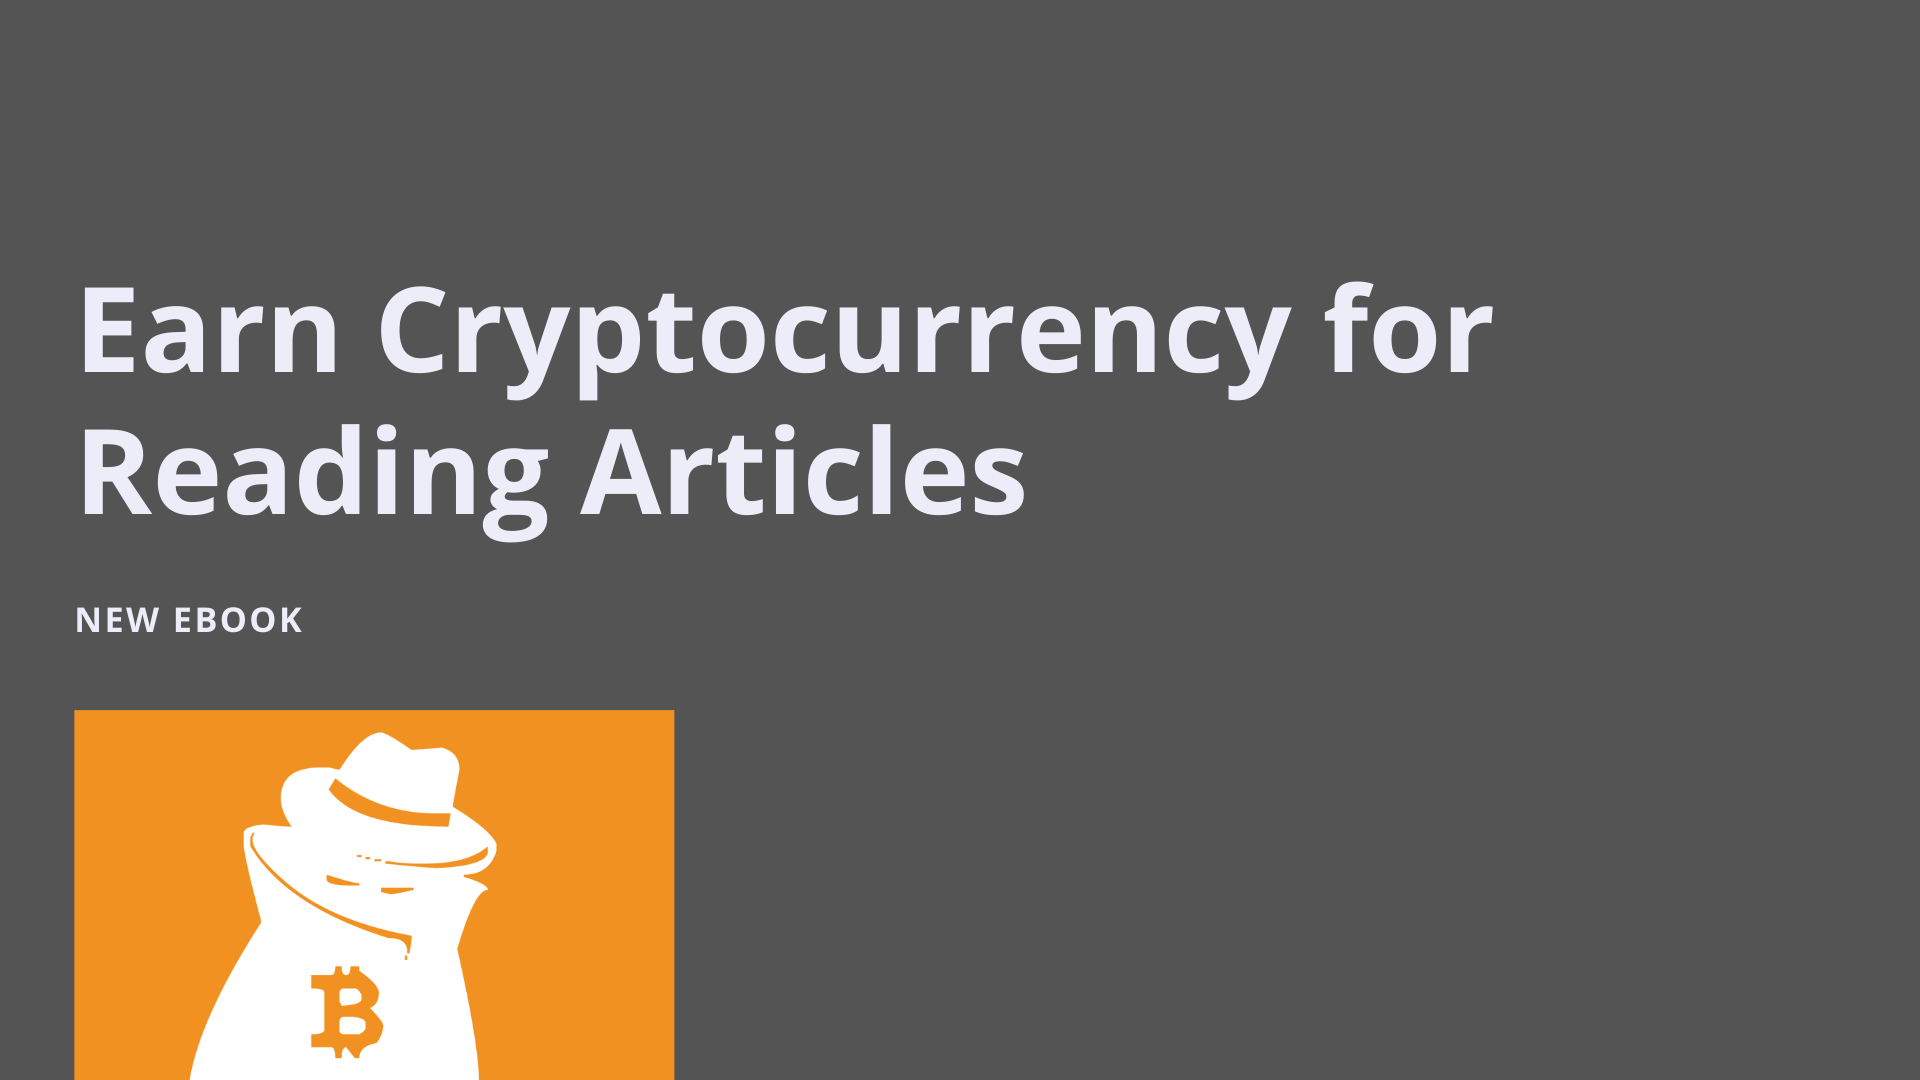 Earn Cryptocurrency for Reading Articles Ebook